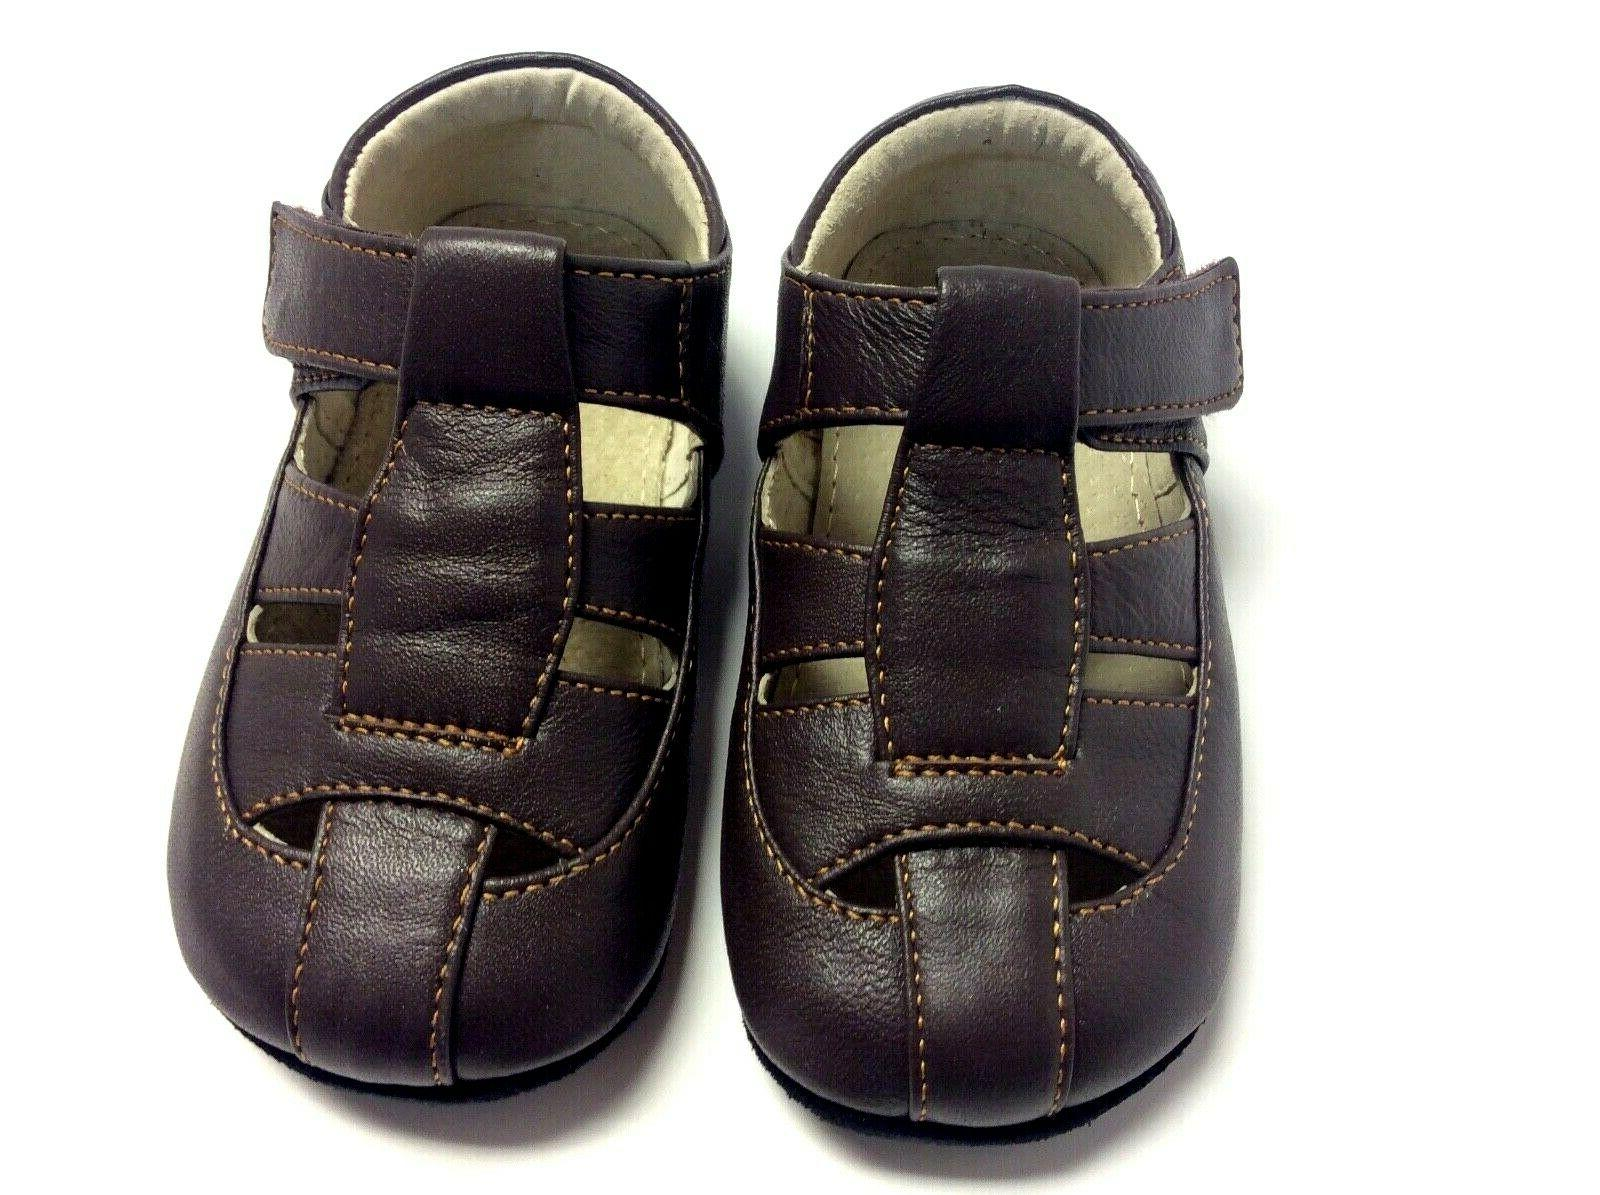 smaller by baby boy brown leather soft